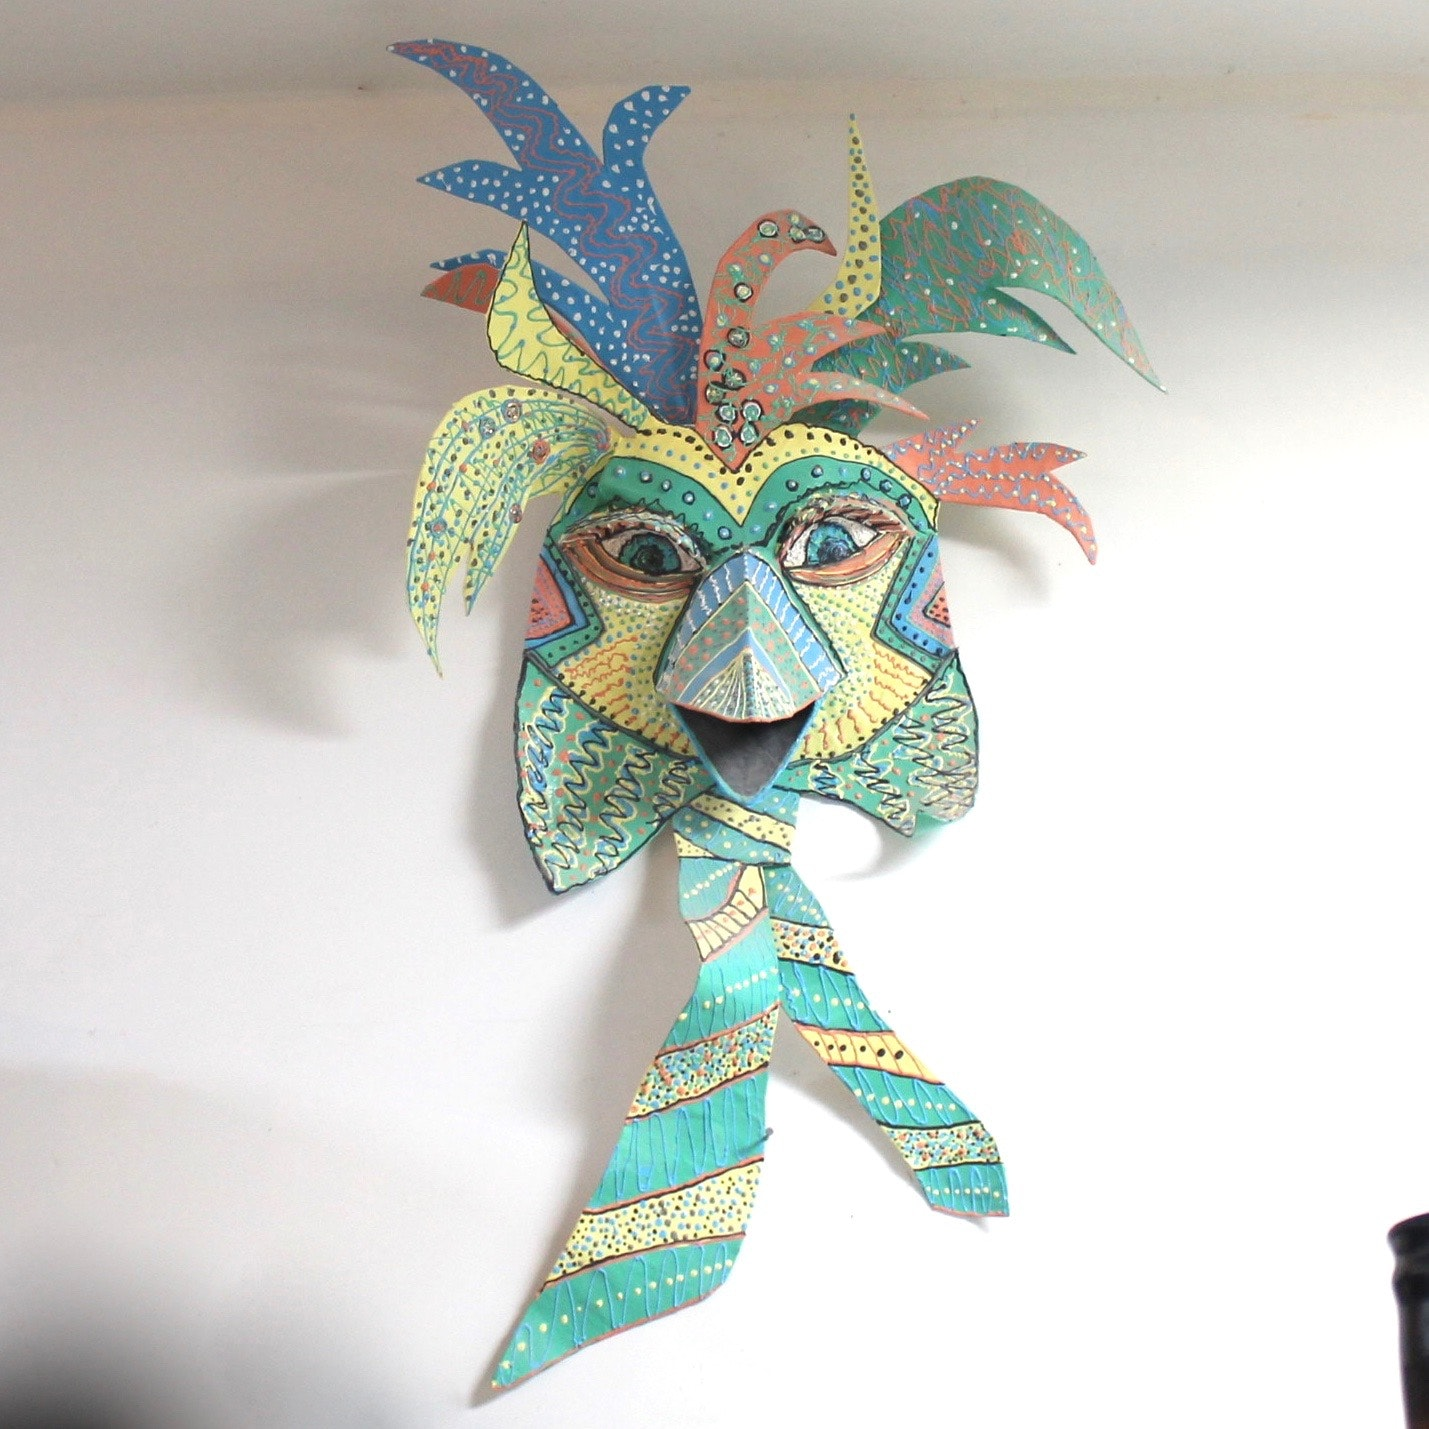 Ornate Hand Crafted Paper Mache Bird Mask